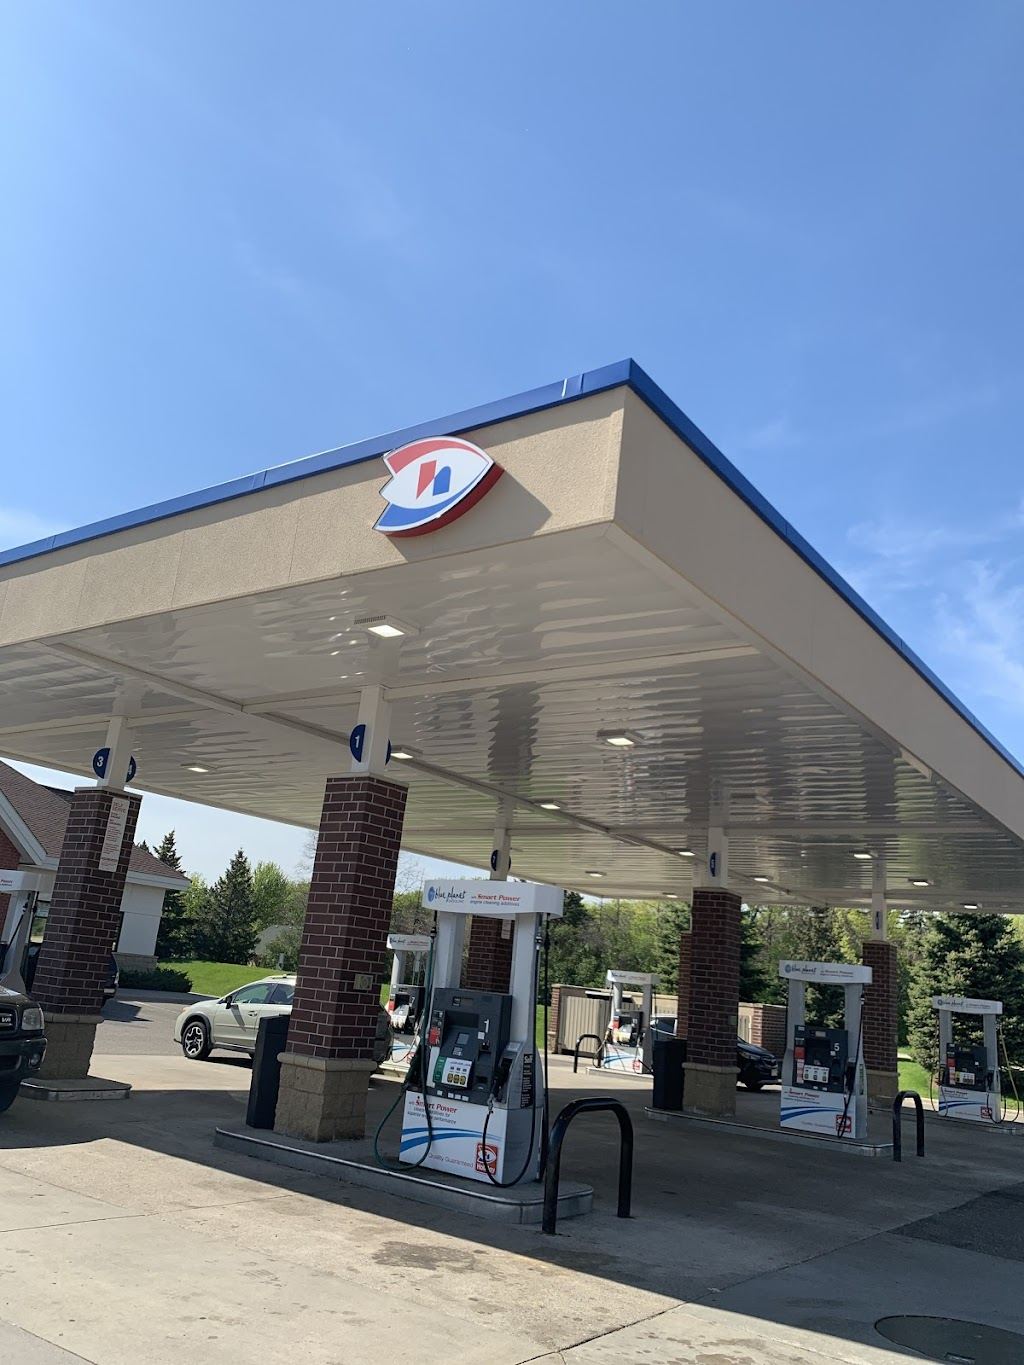 Holiday Stationstores - convenience store  | Photo 1 of 5 | Address: 7033 Jorgensen Ln S, Cottage Grove, MN 55016, USA | Phone: (651) 458-8080